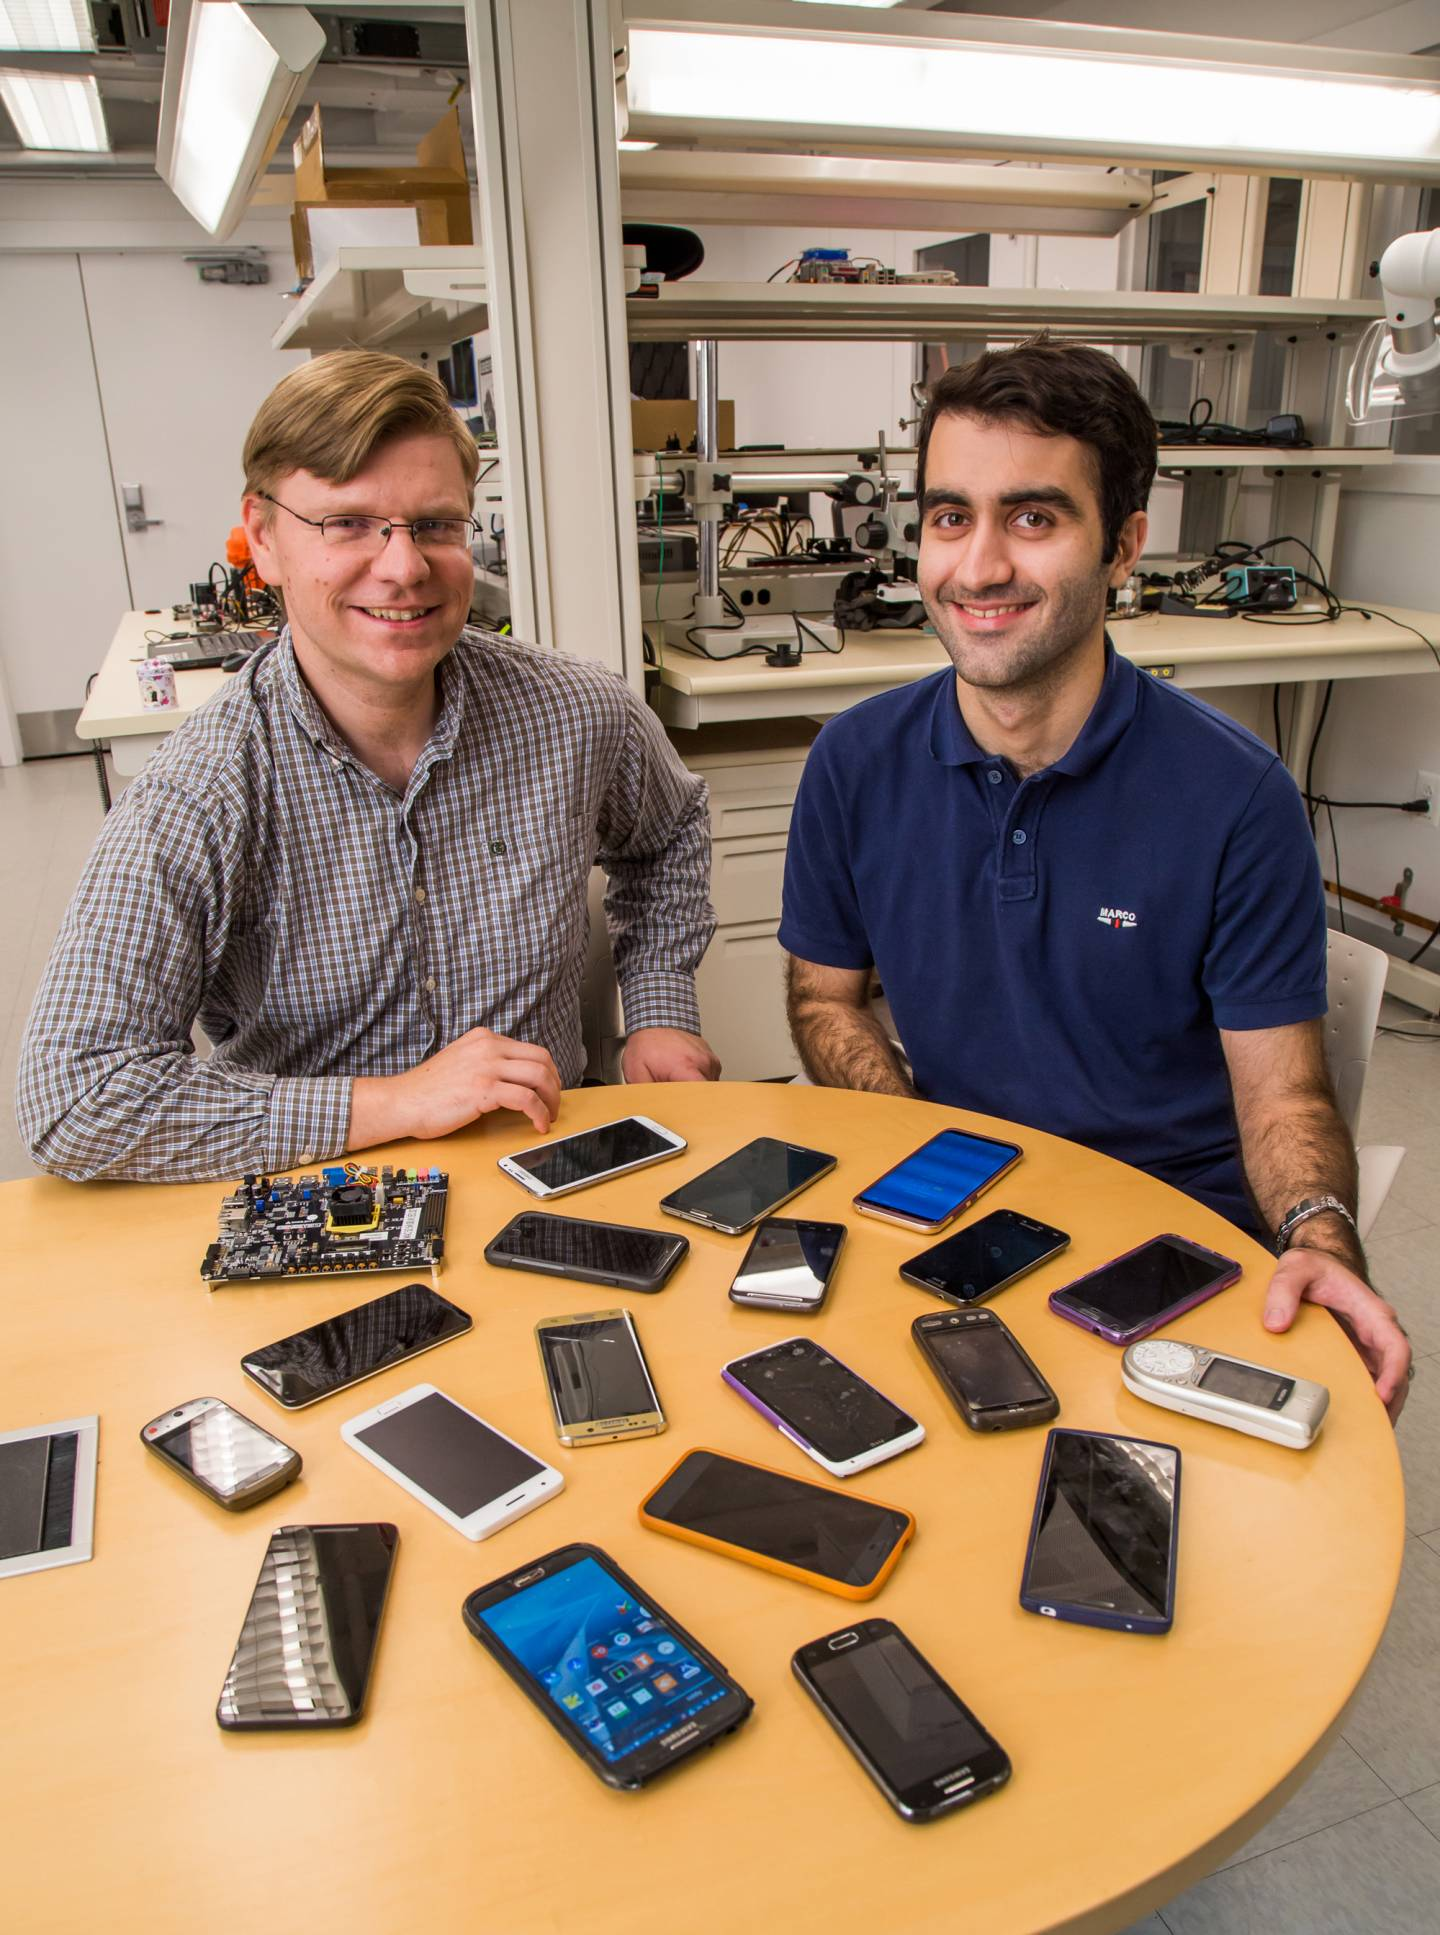 David Wentzlaff and Mohammad Shahrad sit with smart phones on a table